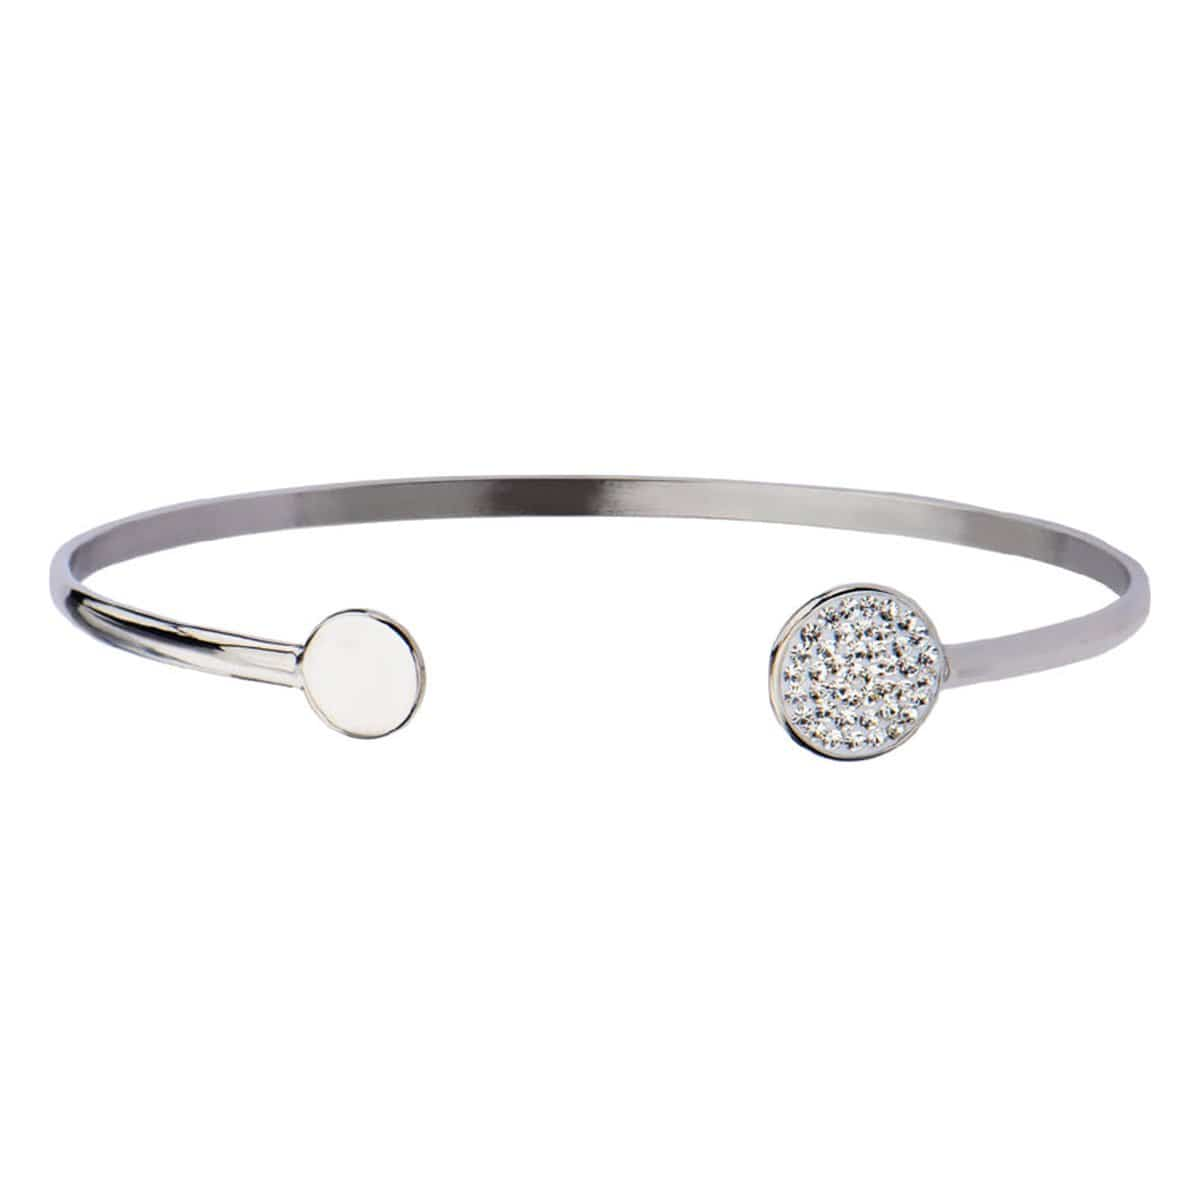 Silver Stainless Steel Double Disc with Studded Crystal Open Bangle